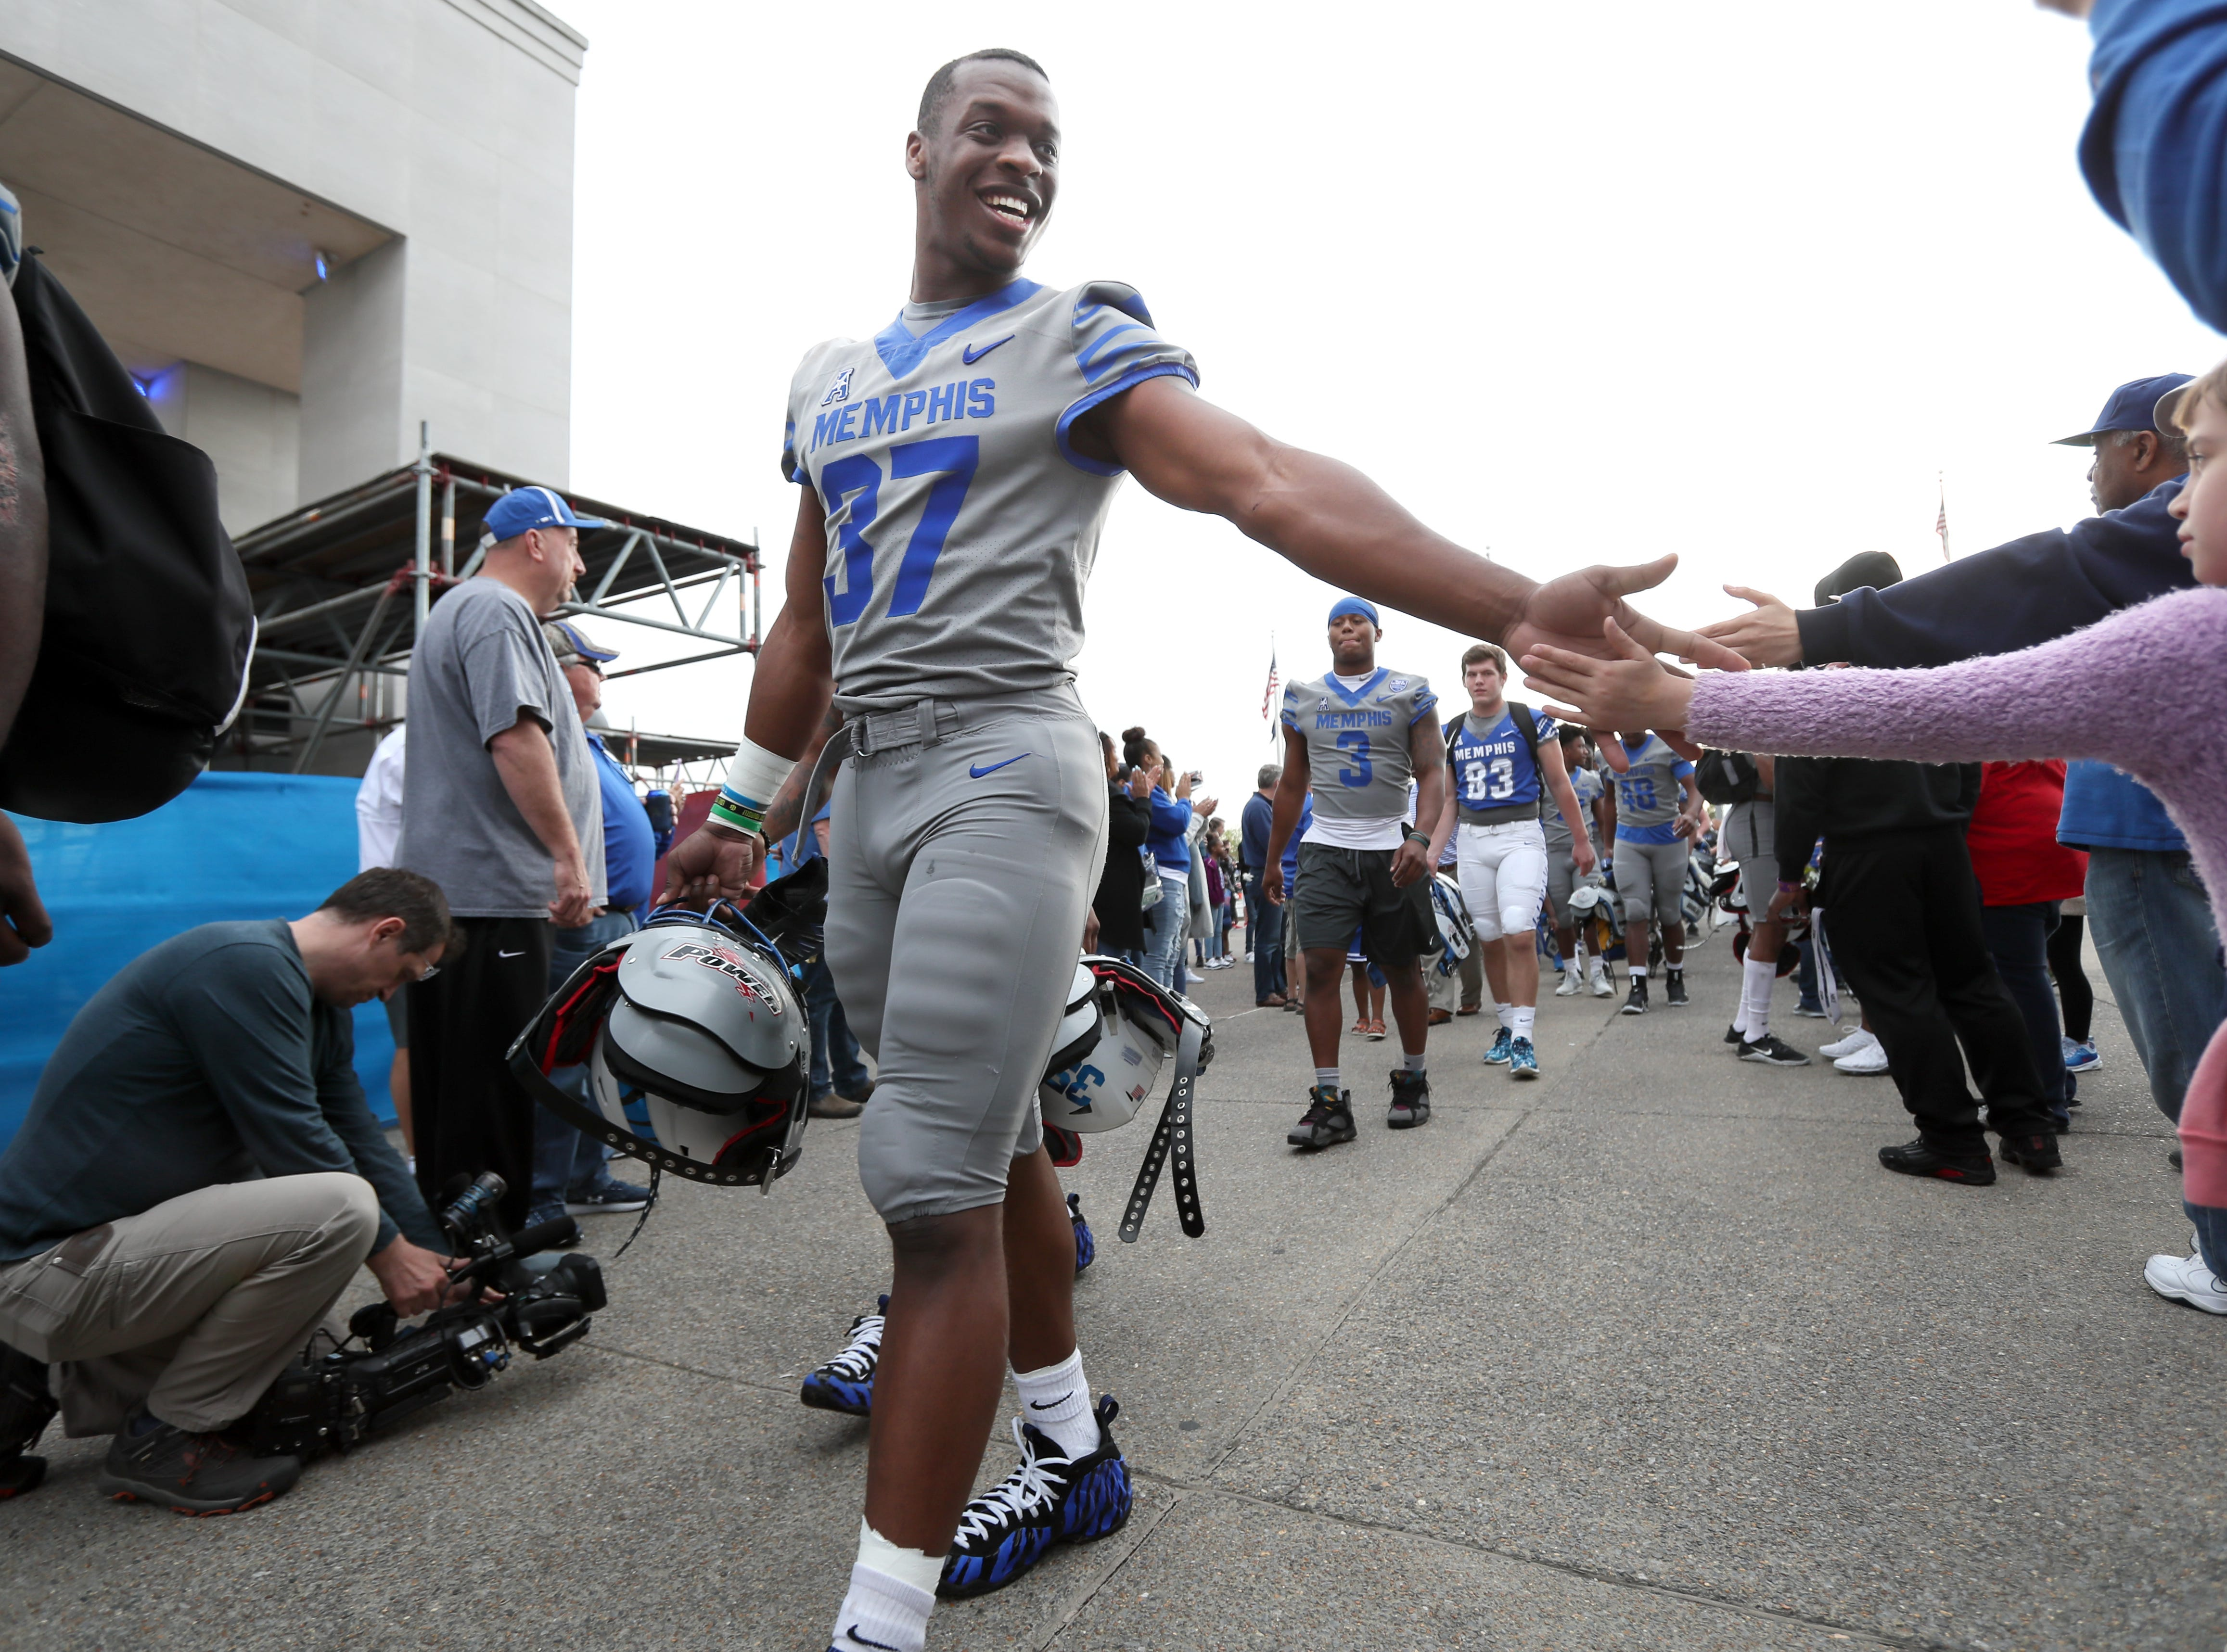 Tigers linebacker Jaylon Allen greets fans before their 'Friday Night Stripes' spring game at Liberty Bowl Memorial Stadium on Friday, April 12, 2019.